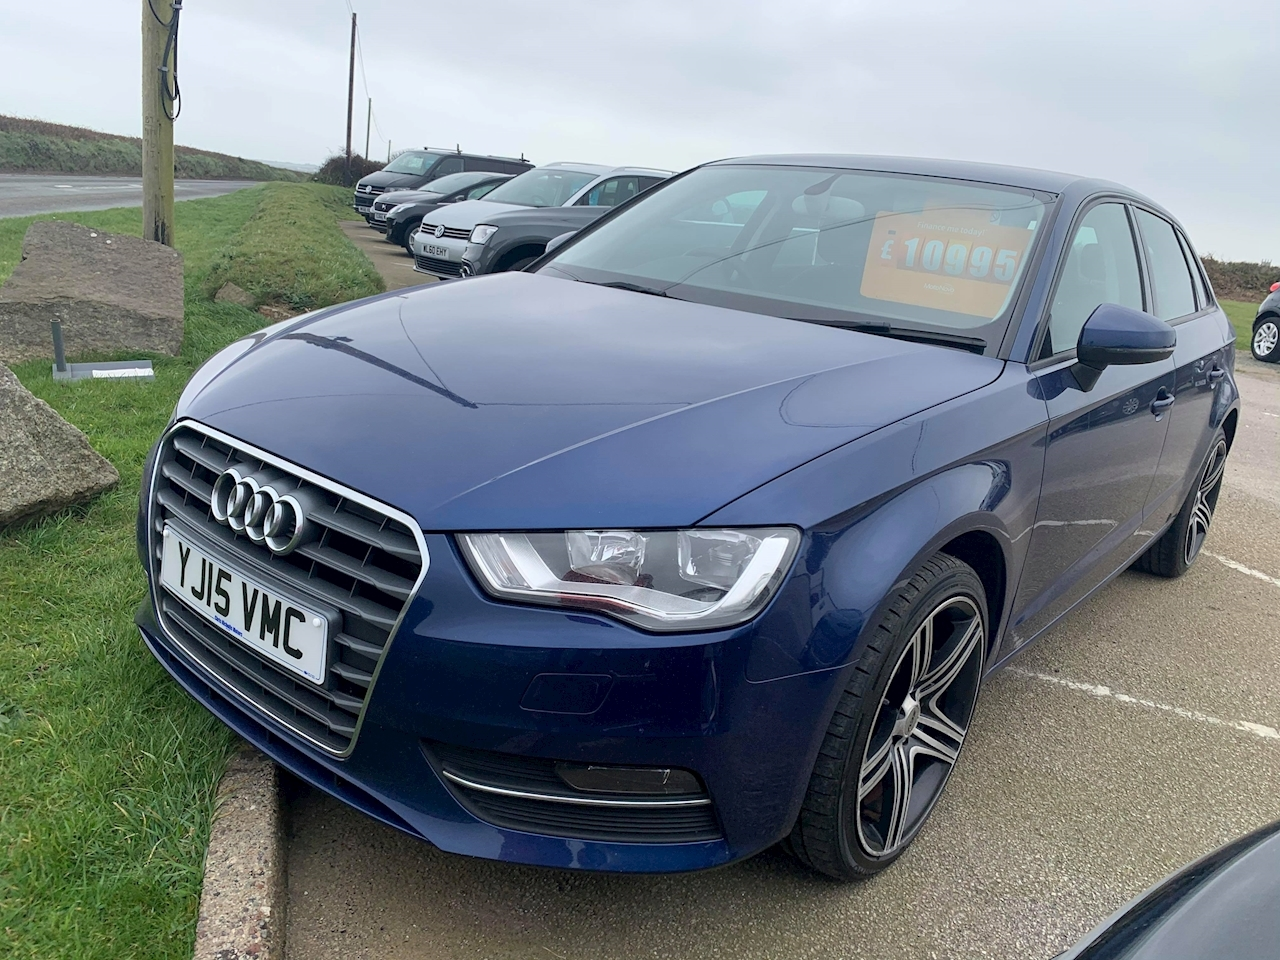 Audi A3 Tdi Sport Hatchback 2.0 Manual Diesel